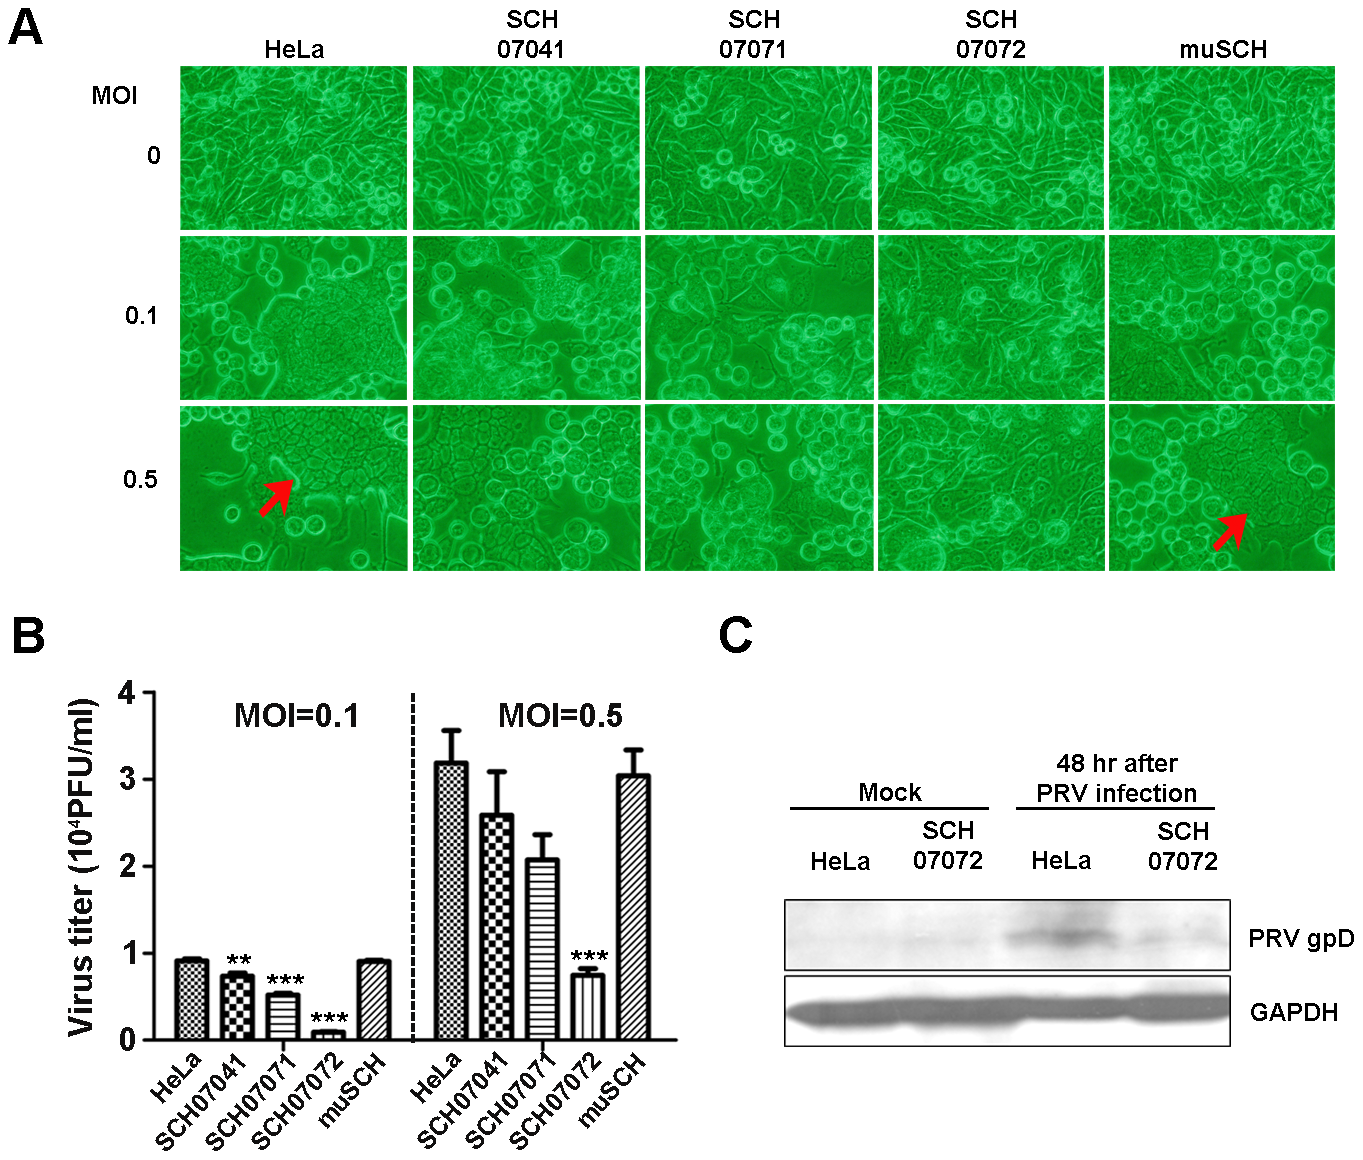 3D8 scFv expression in transgenic HeLa cells confers resistance to PRV.